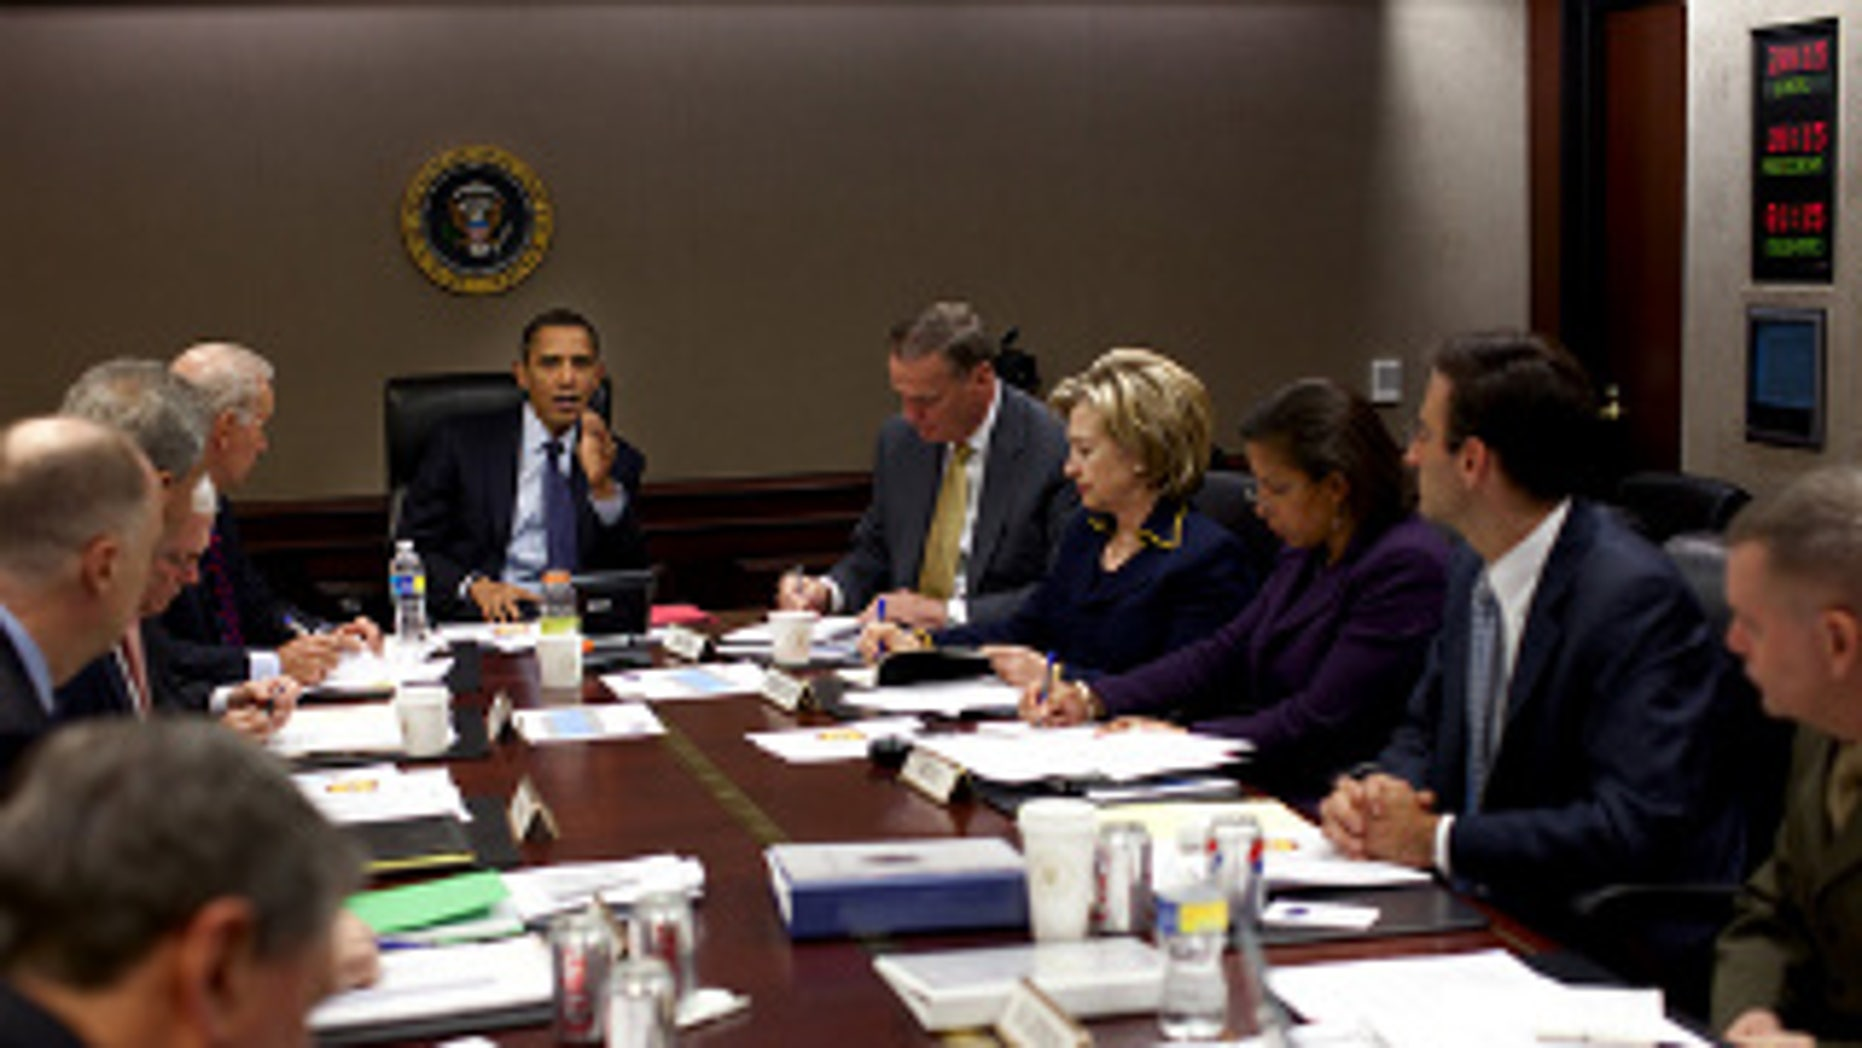 President Obama meets with his national security team to discuss Afghanistan in the Situation Room , Nov. 23, 2009 (WH Photo)